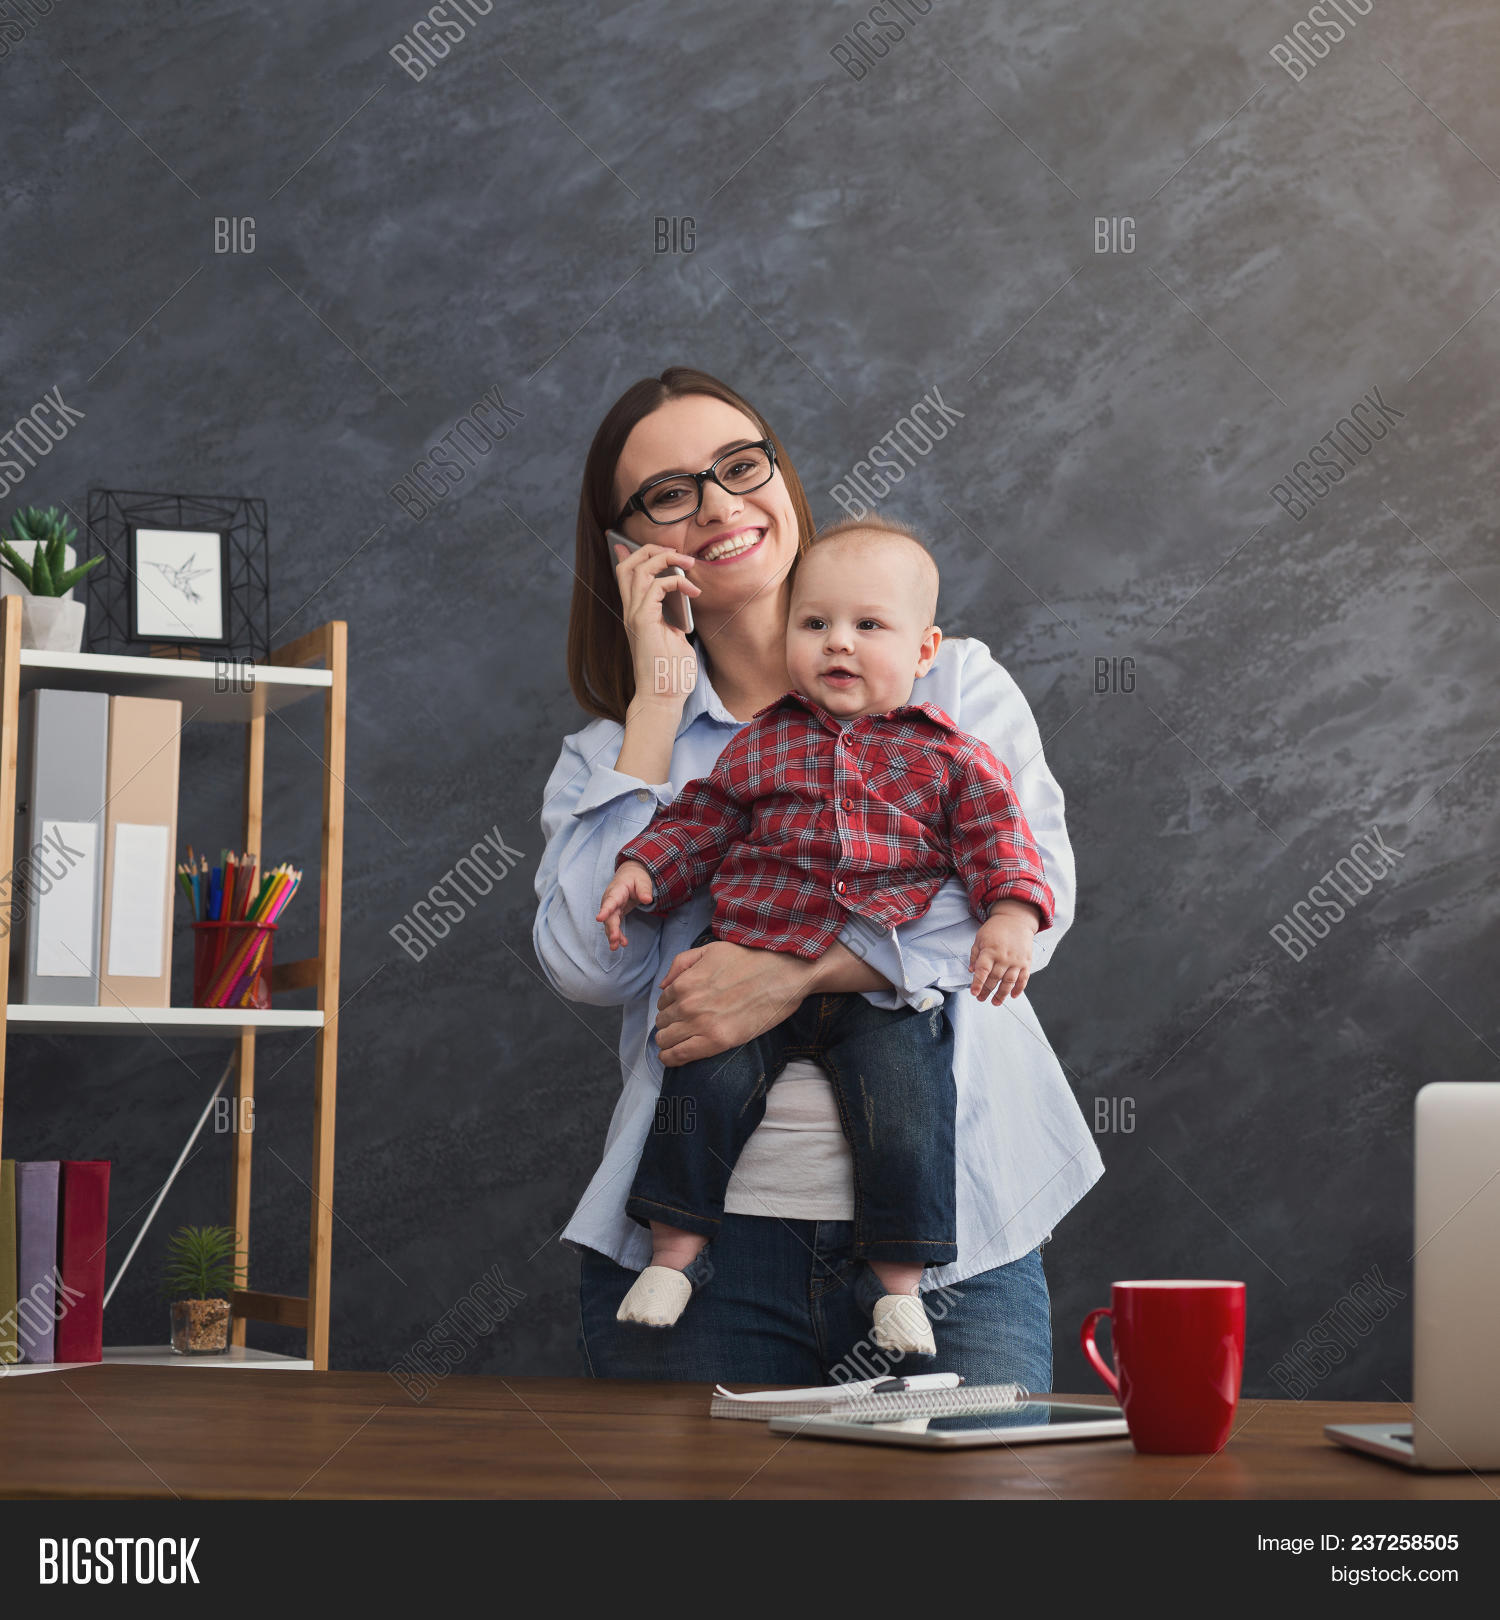 adult,apartment,baby,background,beautiful,boy,business,businesswoman,busy,call,caucasian,cellphone,child,computer,couch,crop,family,female,girl,happy,holding,home,indoors,infant,job,kid,laptop,maternity,modern,moderntechnology,mom,mommy,mother,motherhood,office,parent,parenthood,people,phone,smartphone,smile,son,table,talk,toddler,two,woman,work,young